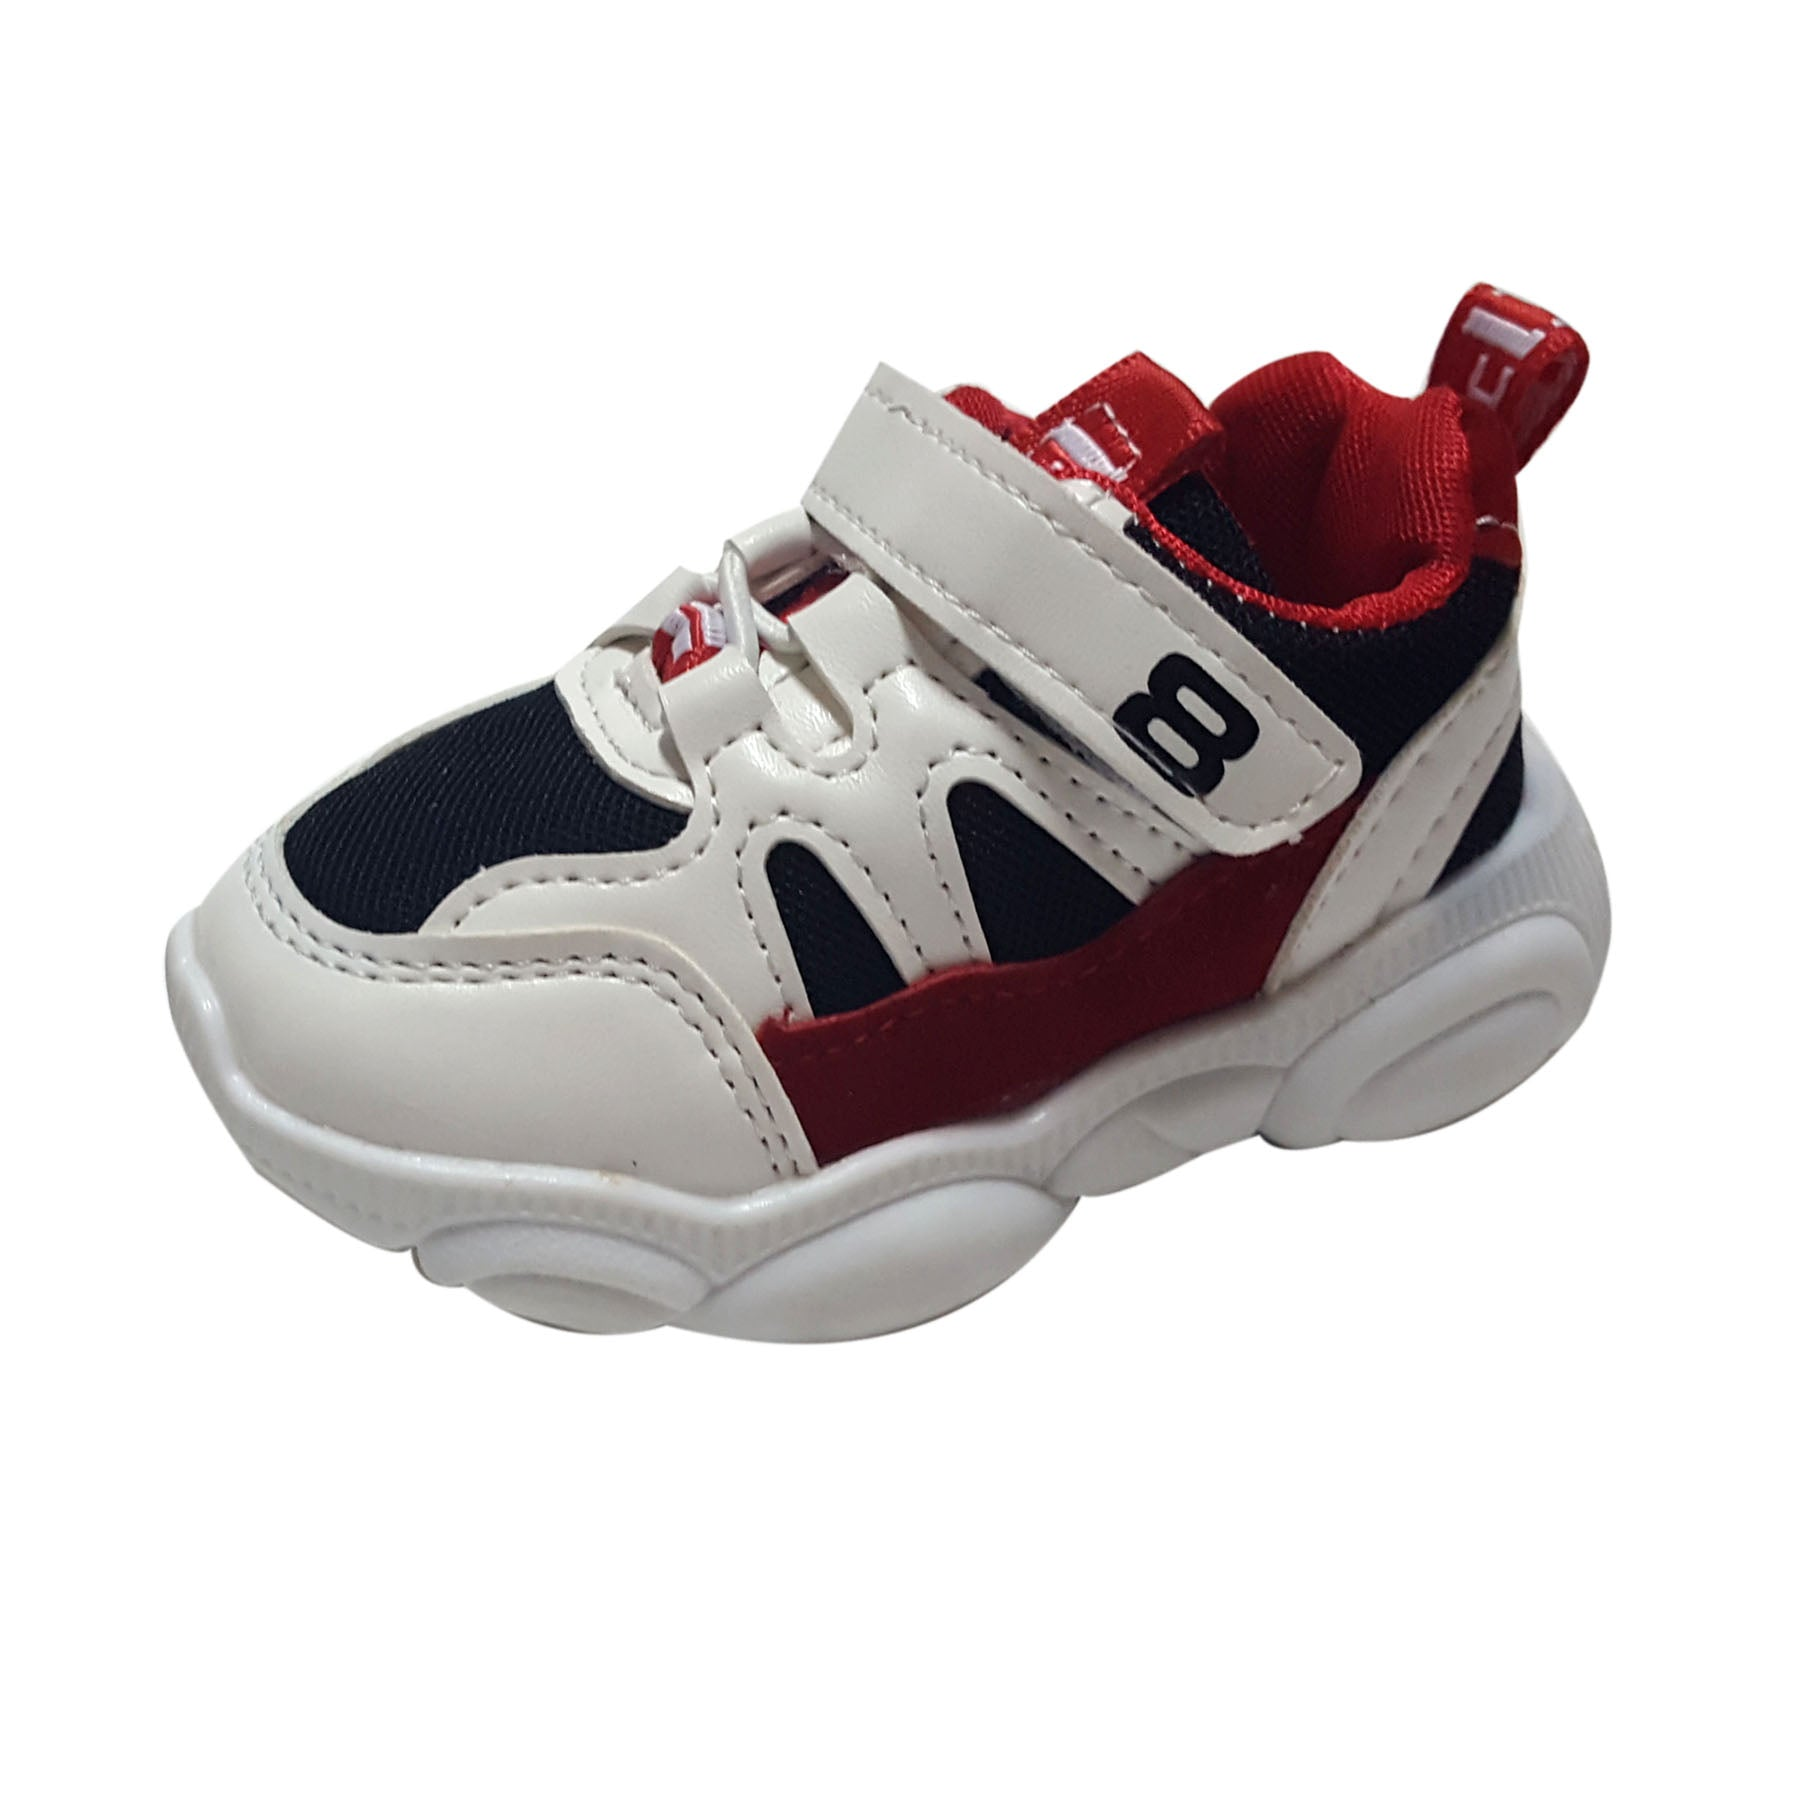 S178 RR Sports Shoes - Byron Red Special Offer